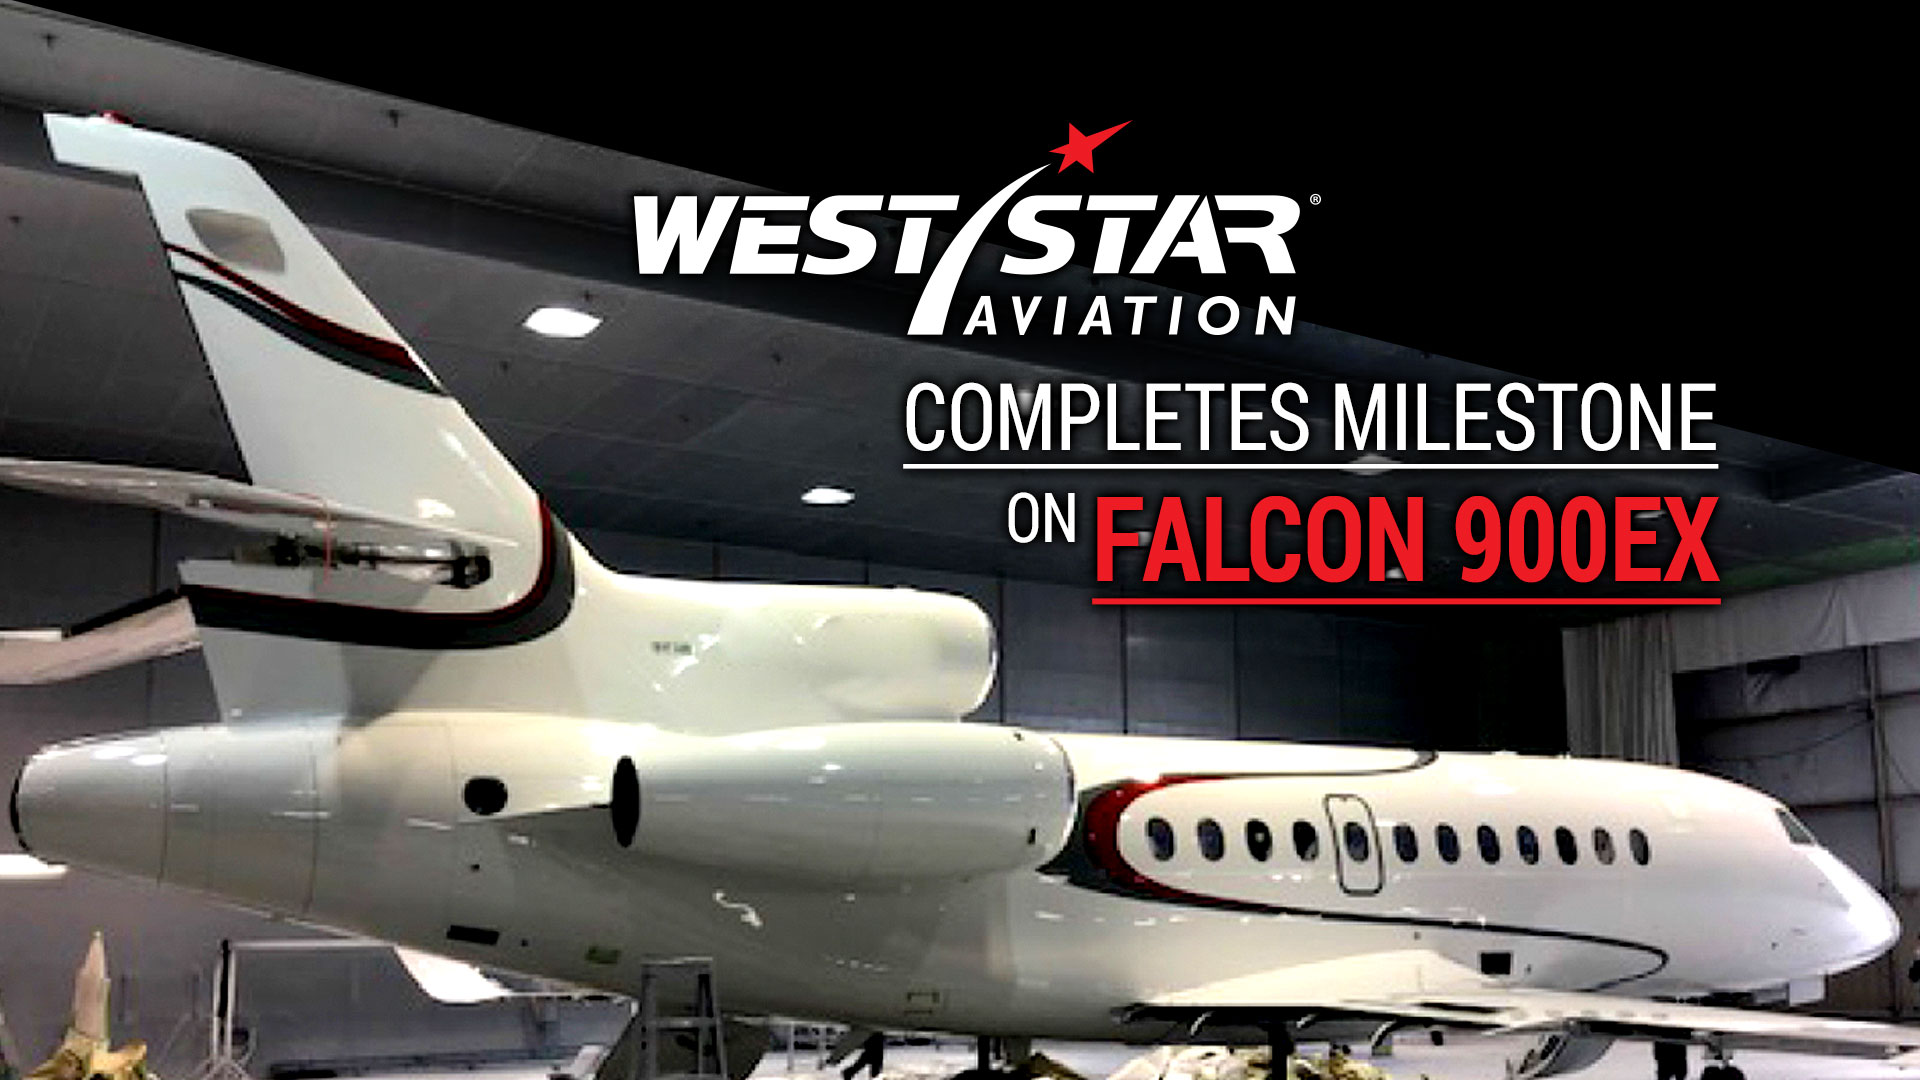 Completes Milestone Inspection on Falcon 900EX